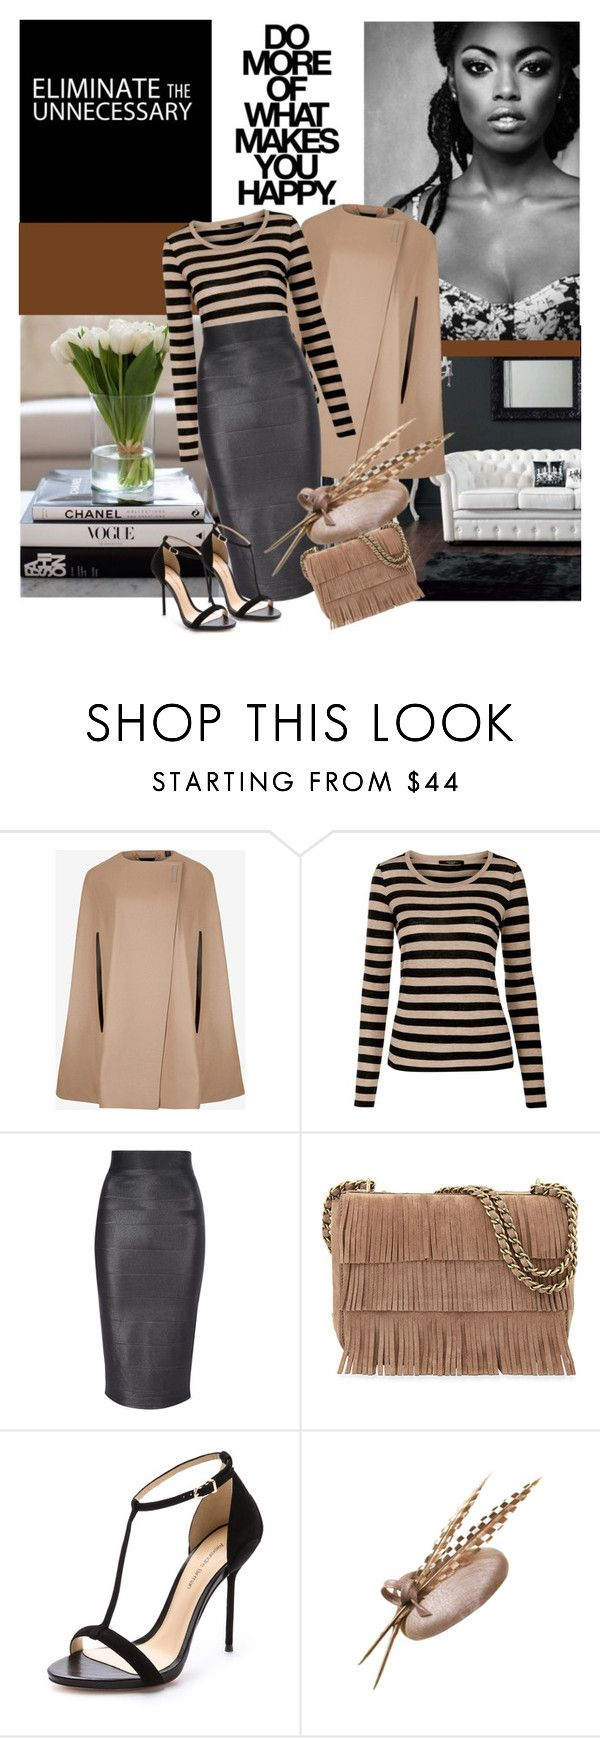 """""""Do More Of What Makes You Happy"""" by marina-volaric ❤ liked on Polyvore featuring Ted Baker, Weekend Max Mara, Jane Norman, Tory Burch, Alexandre Birman, nude, cape, MaxMara and fringedbag"""